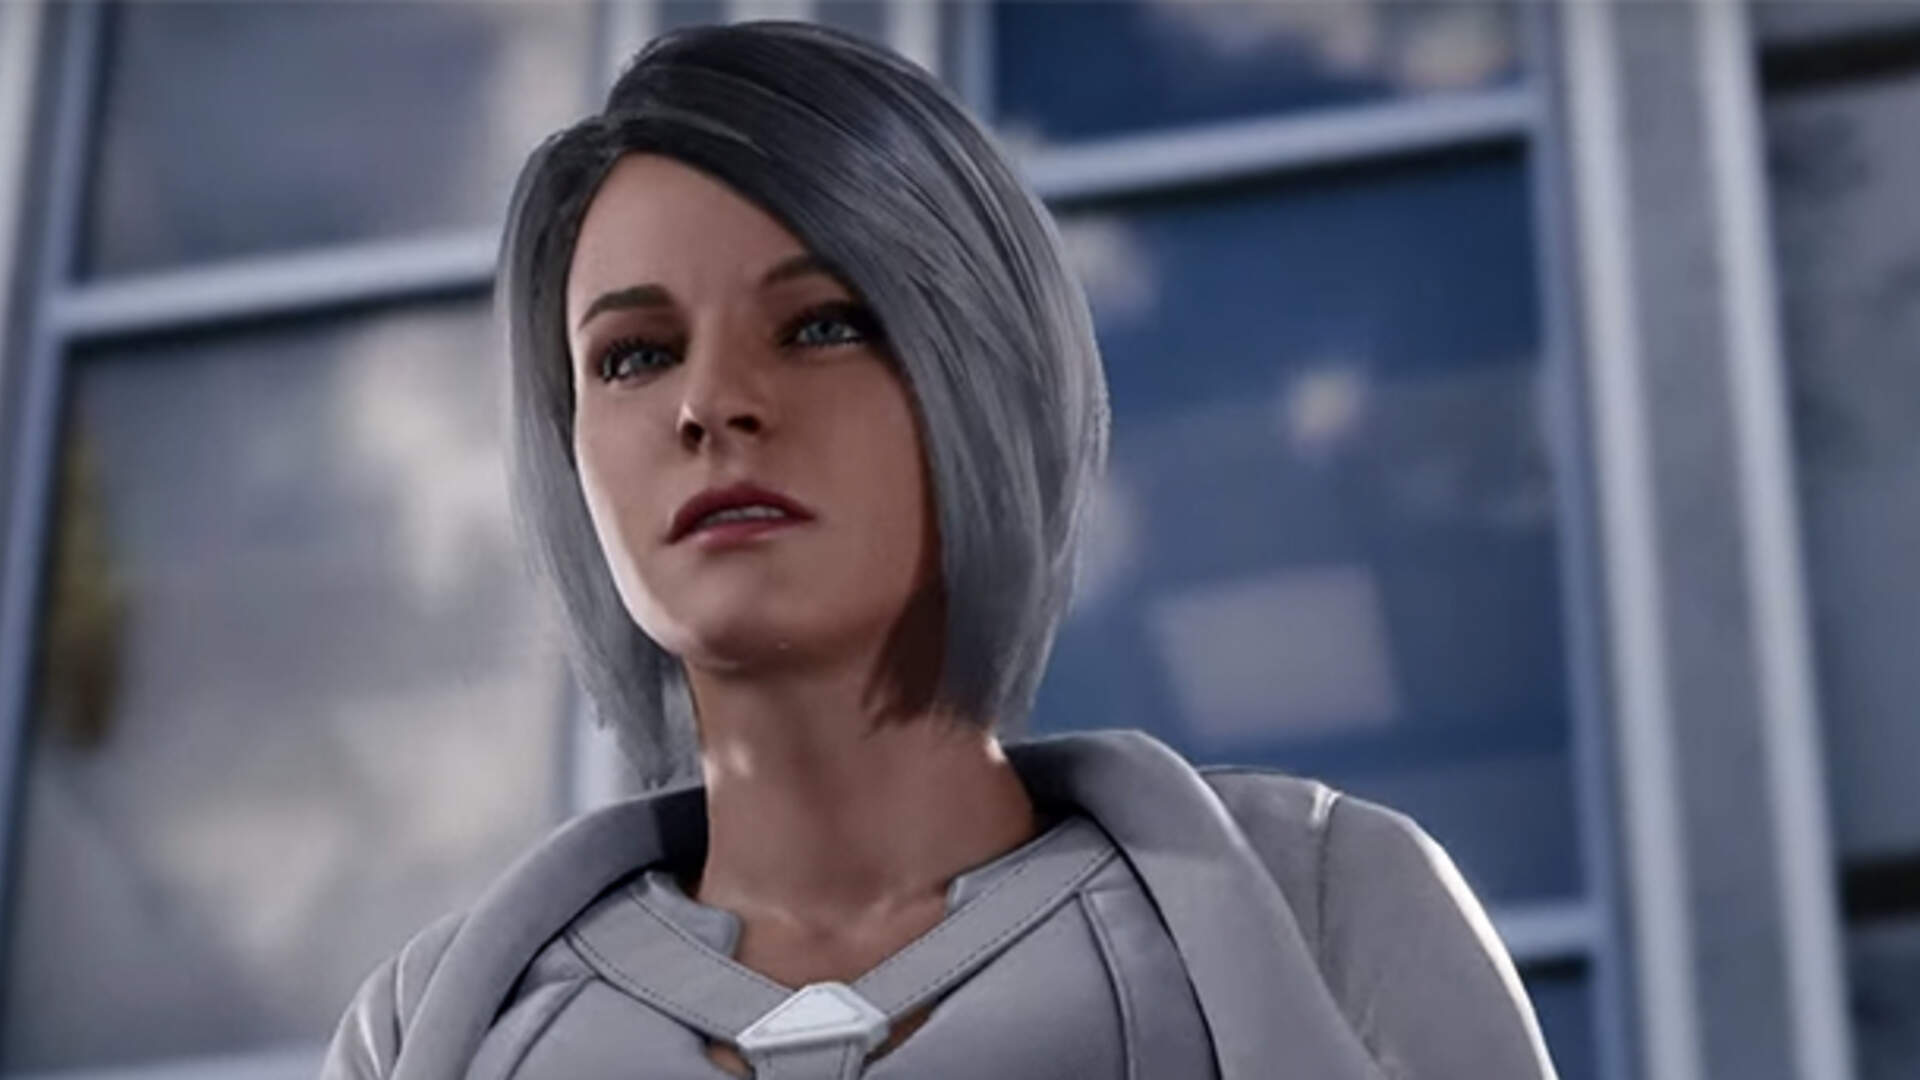 Spider-Man PS4 Has Three New Suits for 'Silver Lining' DLC Including a Cool Movie Tie-In